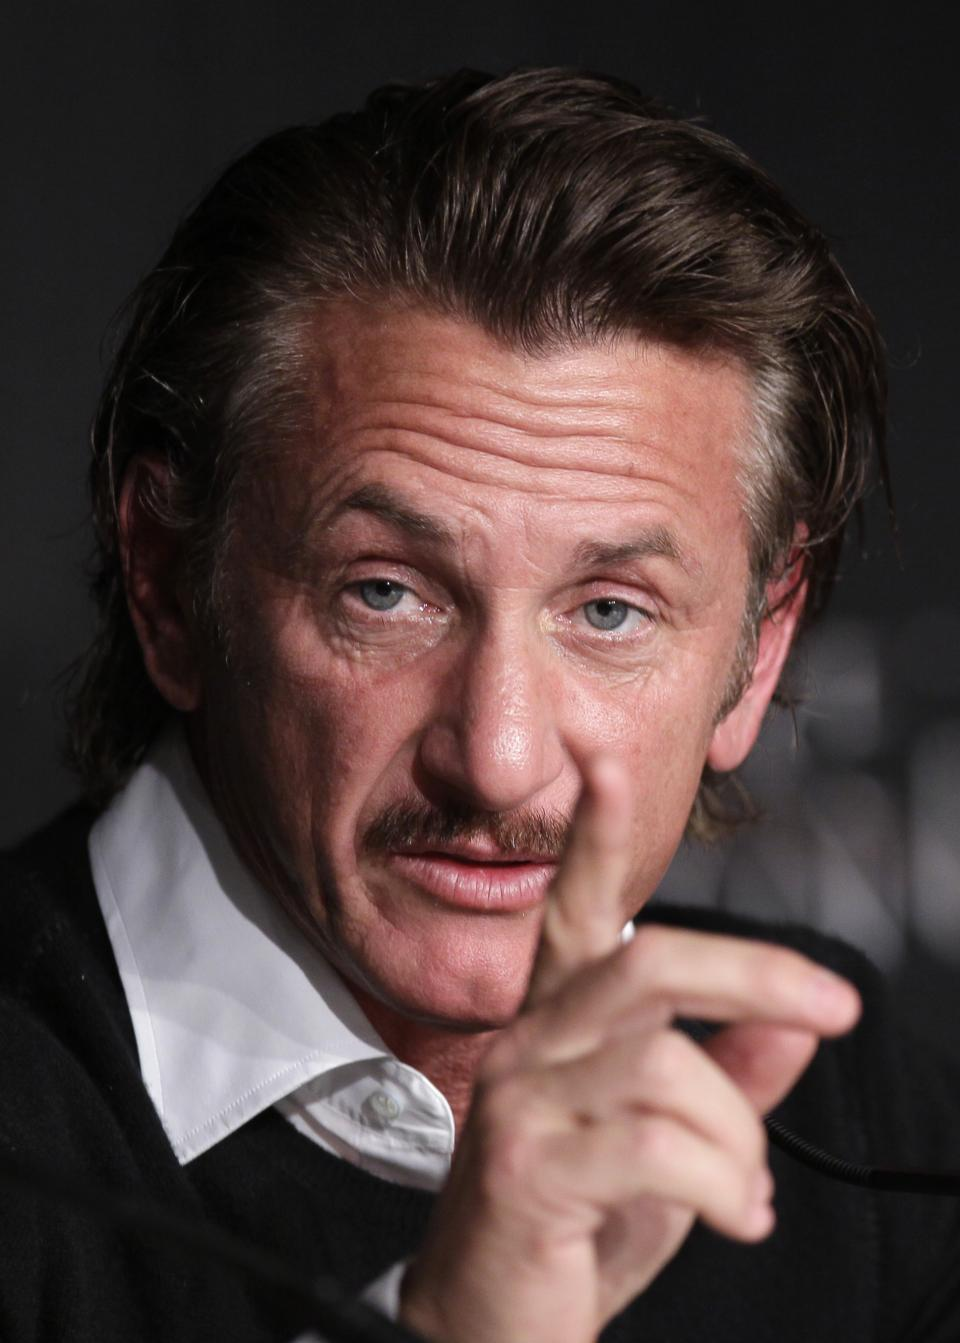 Actor Sean Penn gestures during a press conference for the Haiti Carnival charity event at the 65th international film festival, in Cannes, southern France, Friday, May 18, 2012. (AP Photo/Francois Mori)